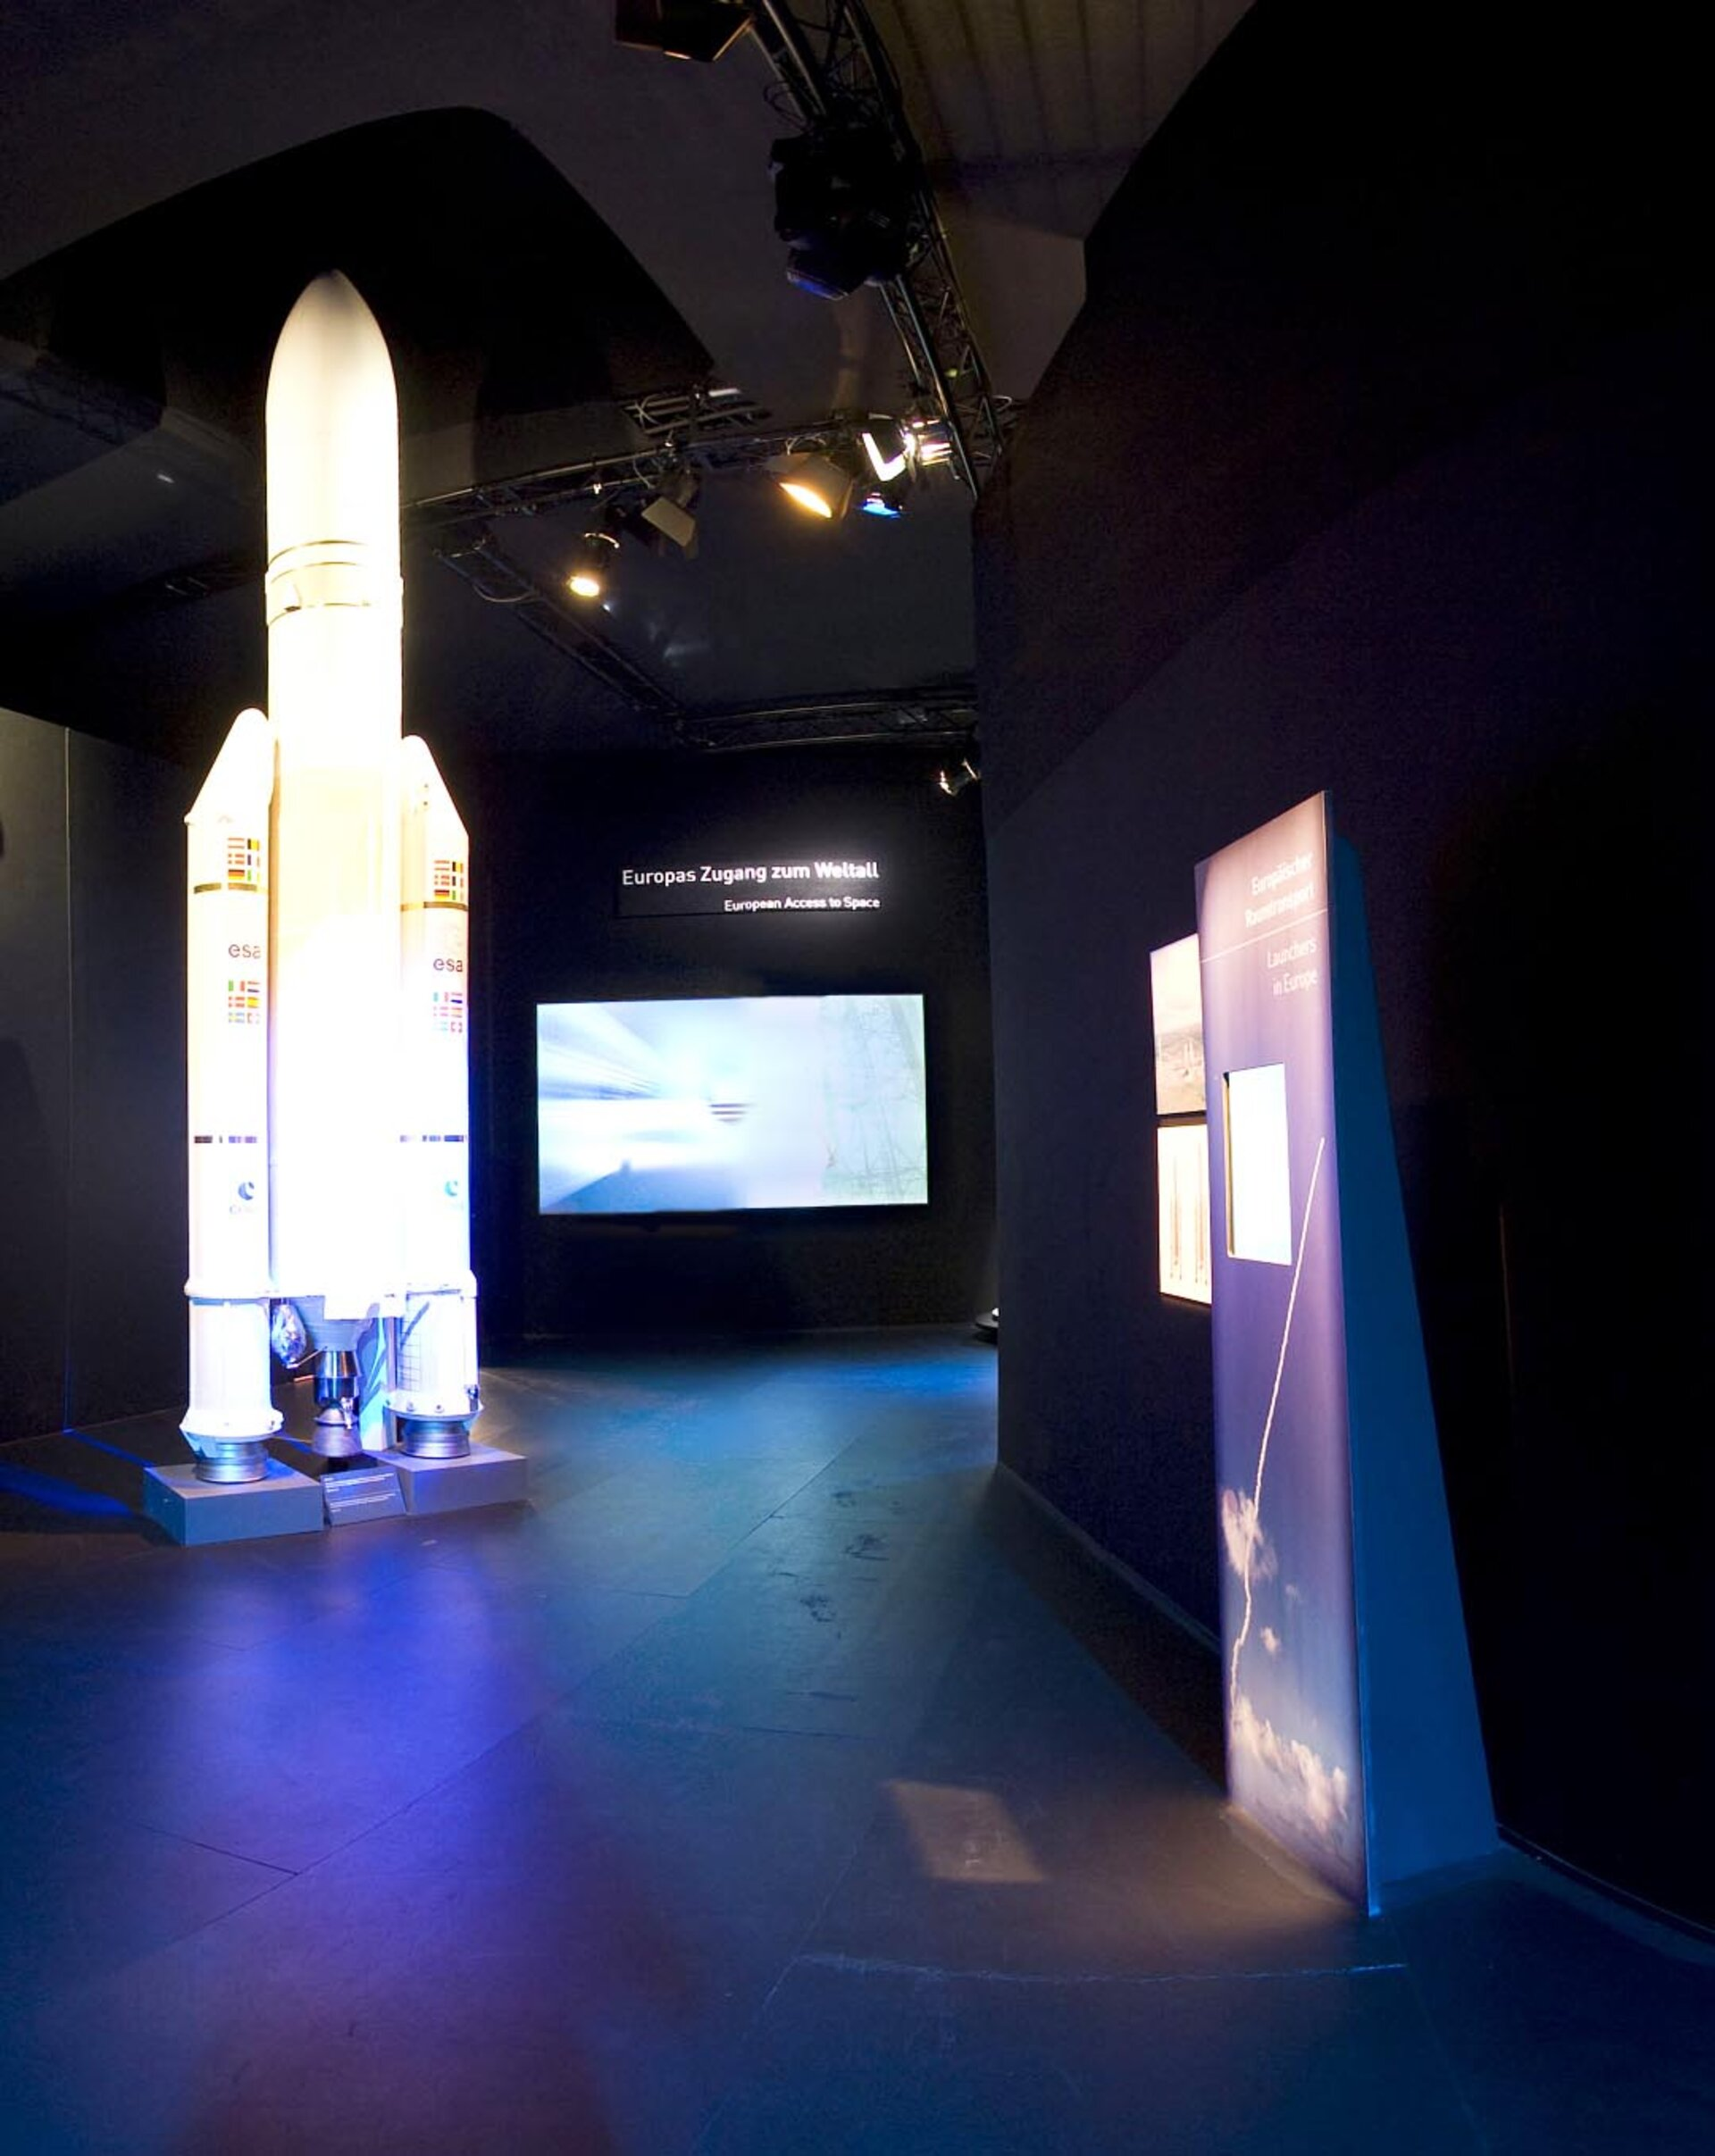 Scale model of Ariane 5 at Space Pavilion entrance